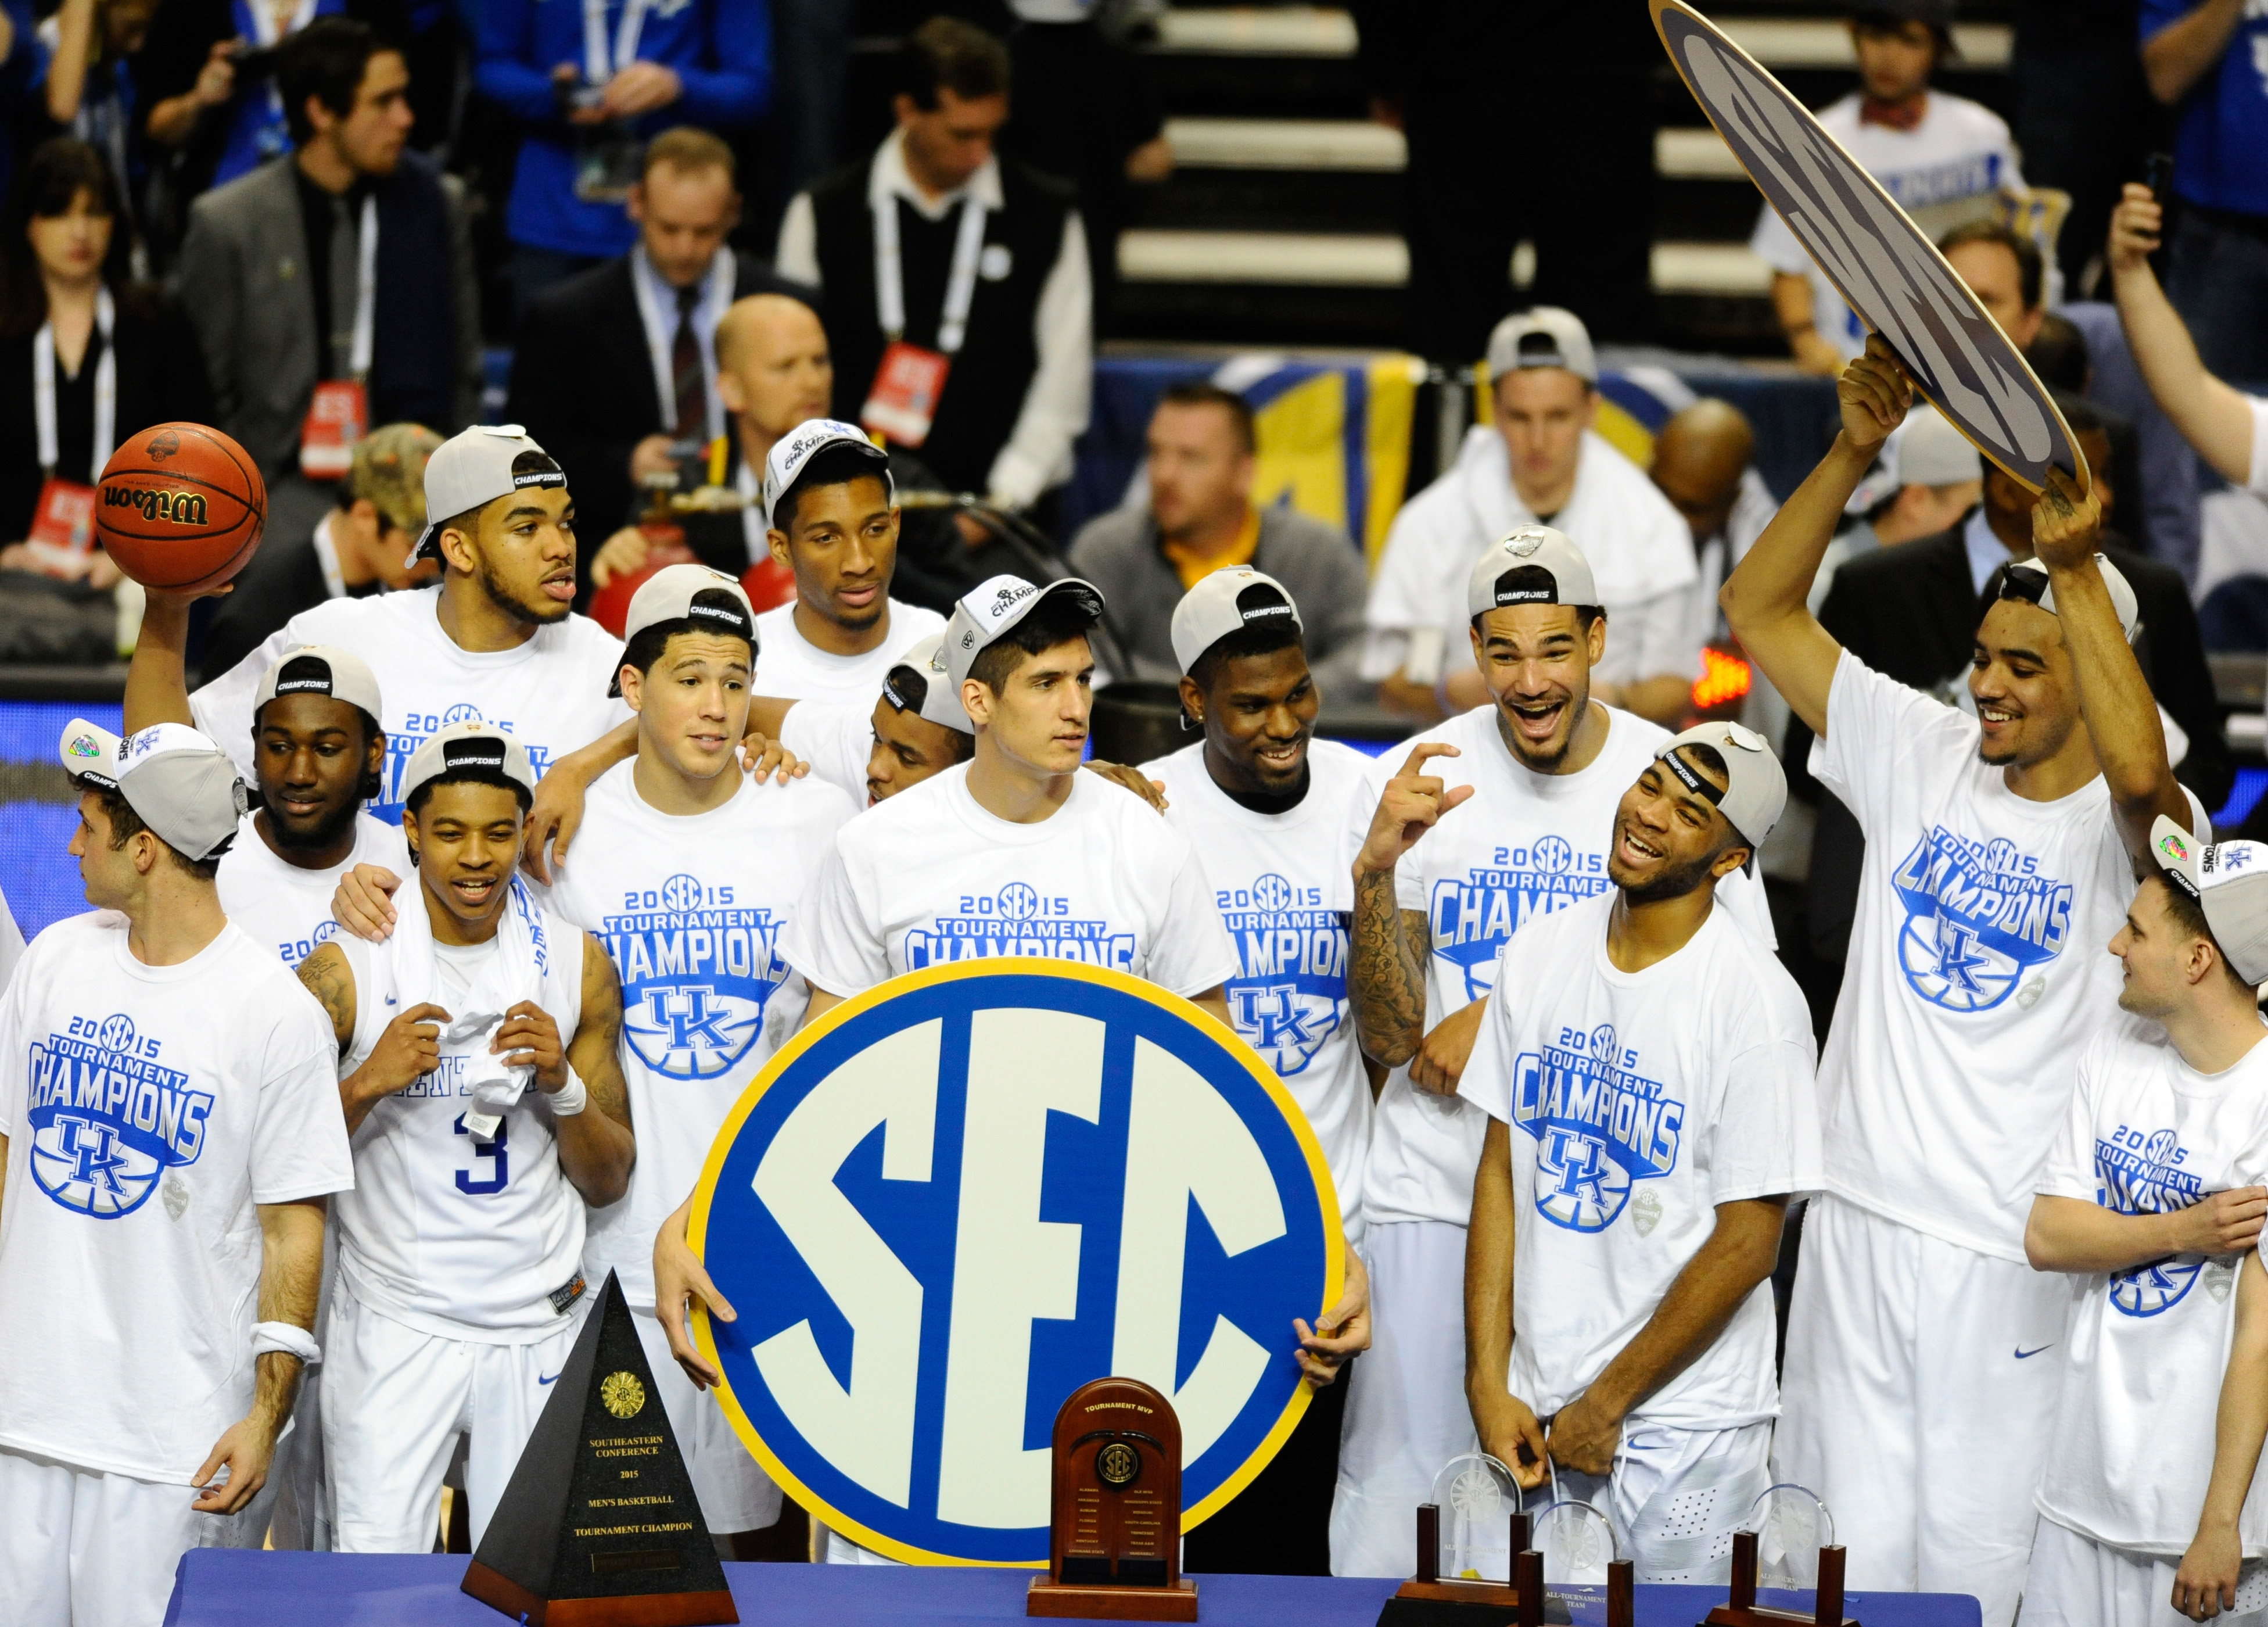 Kentucky Wildcats players celebrate after a win in the SEC Conference Championship game. (Christopher Hanewinckel-USA TODAY Sports)